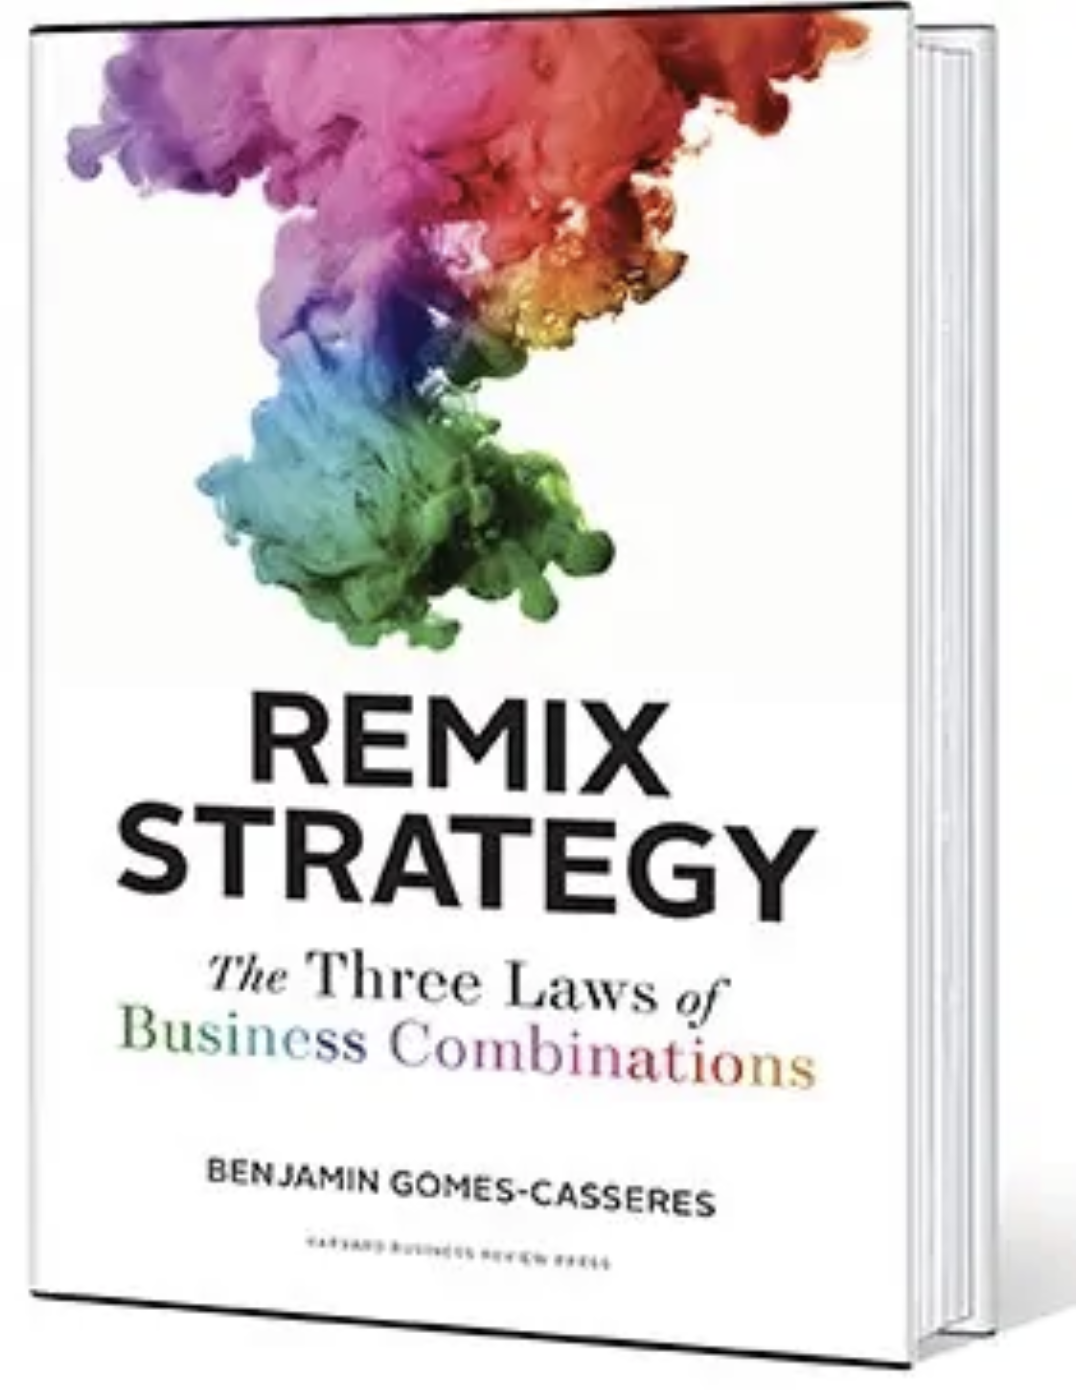 Remix Strategy — NEW BOOK